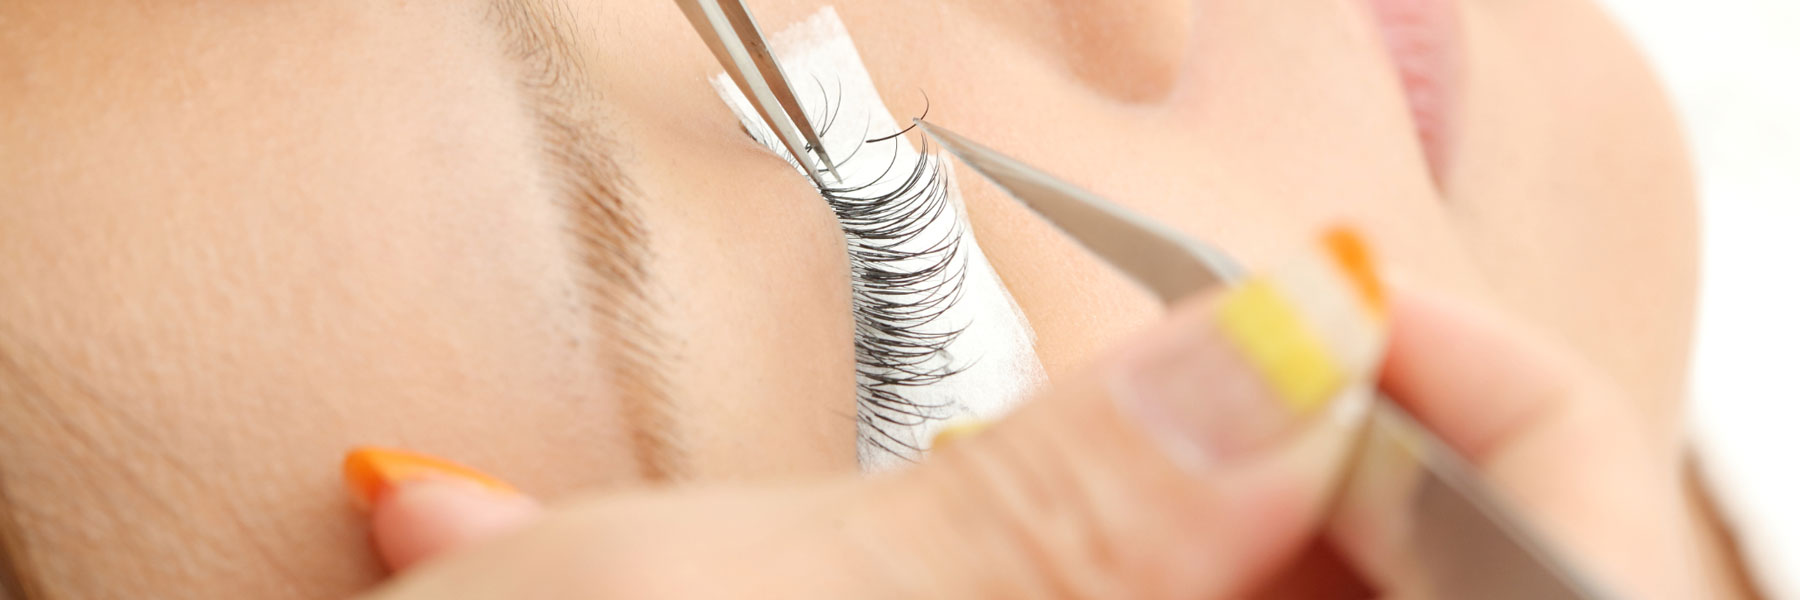 Eyelash Extension Training Maquillage Skin Care